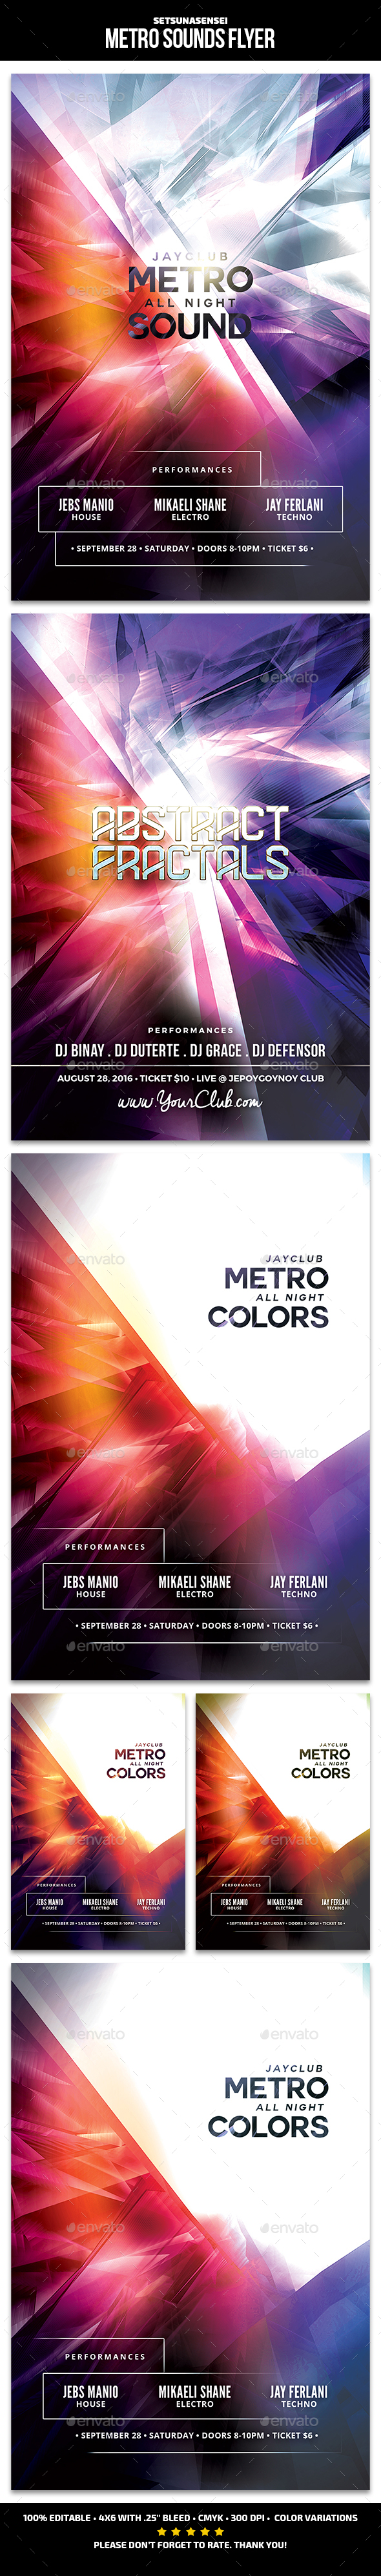 Metro Sounds Flyer - Clubs & Parties Events